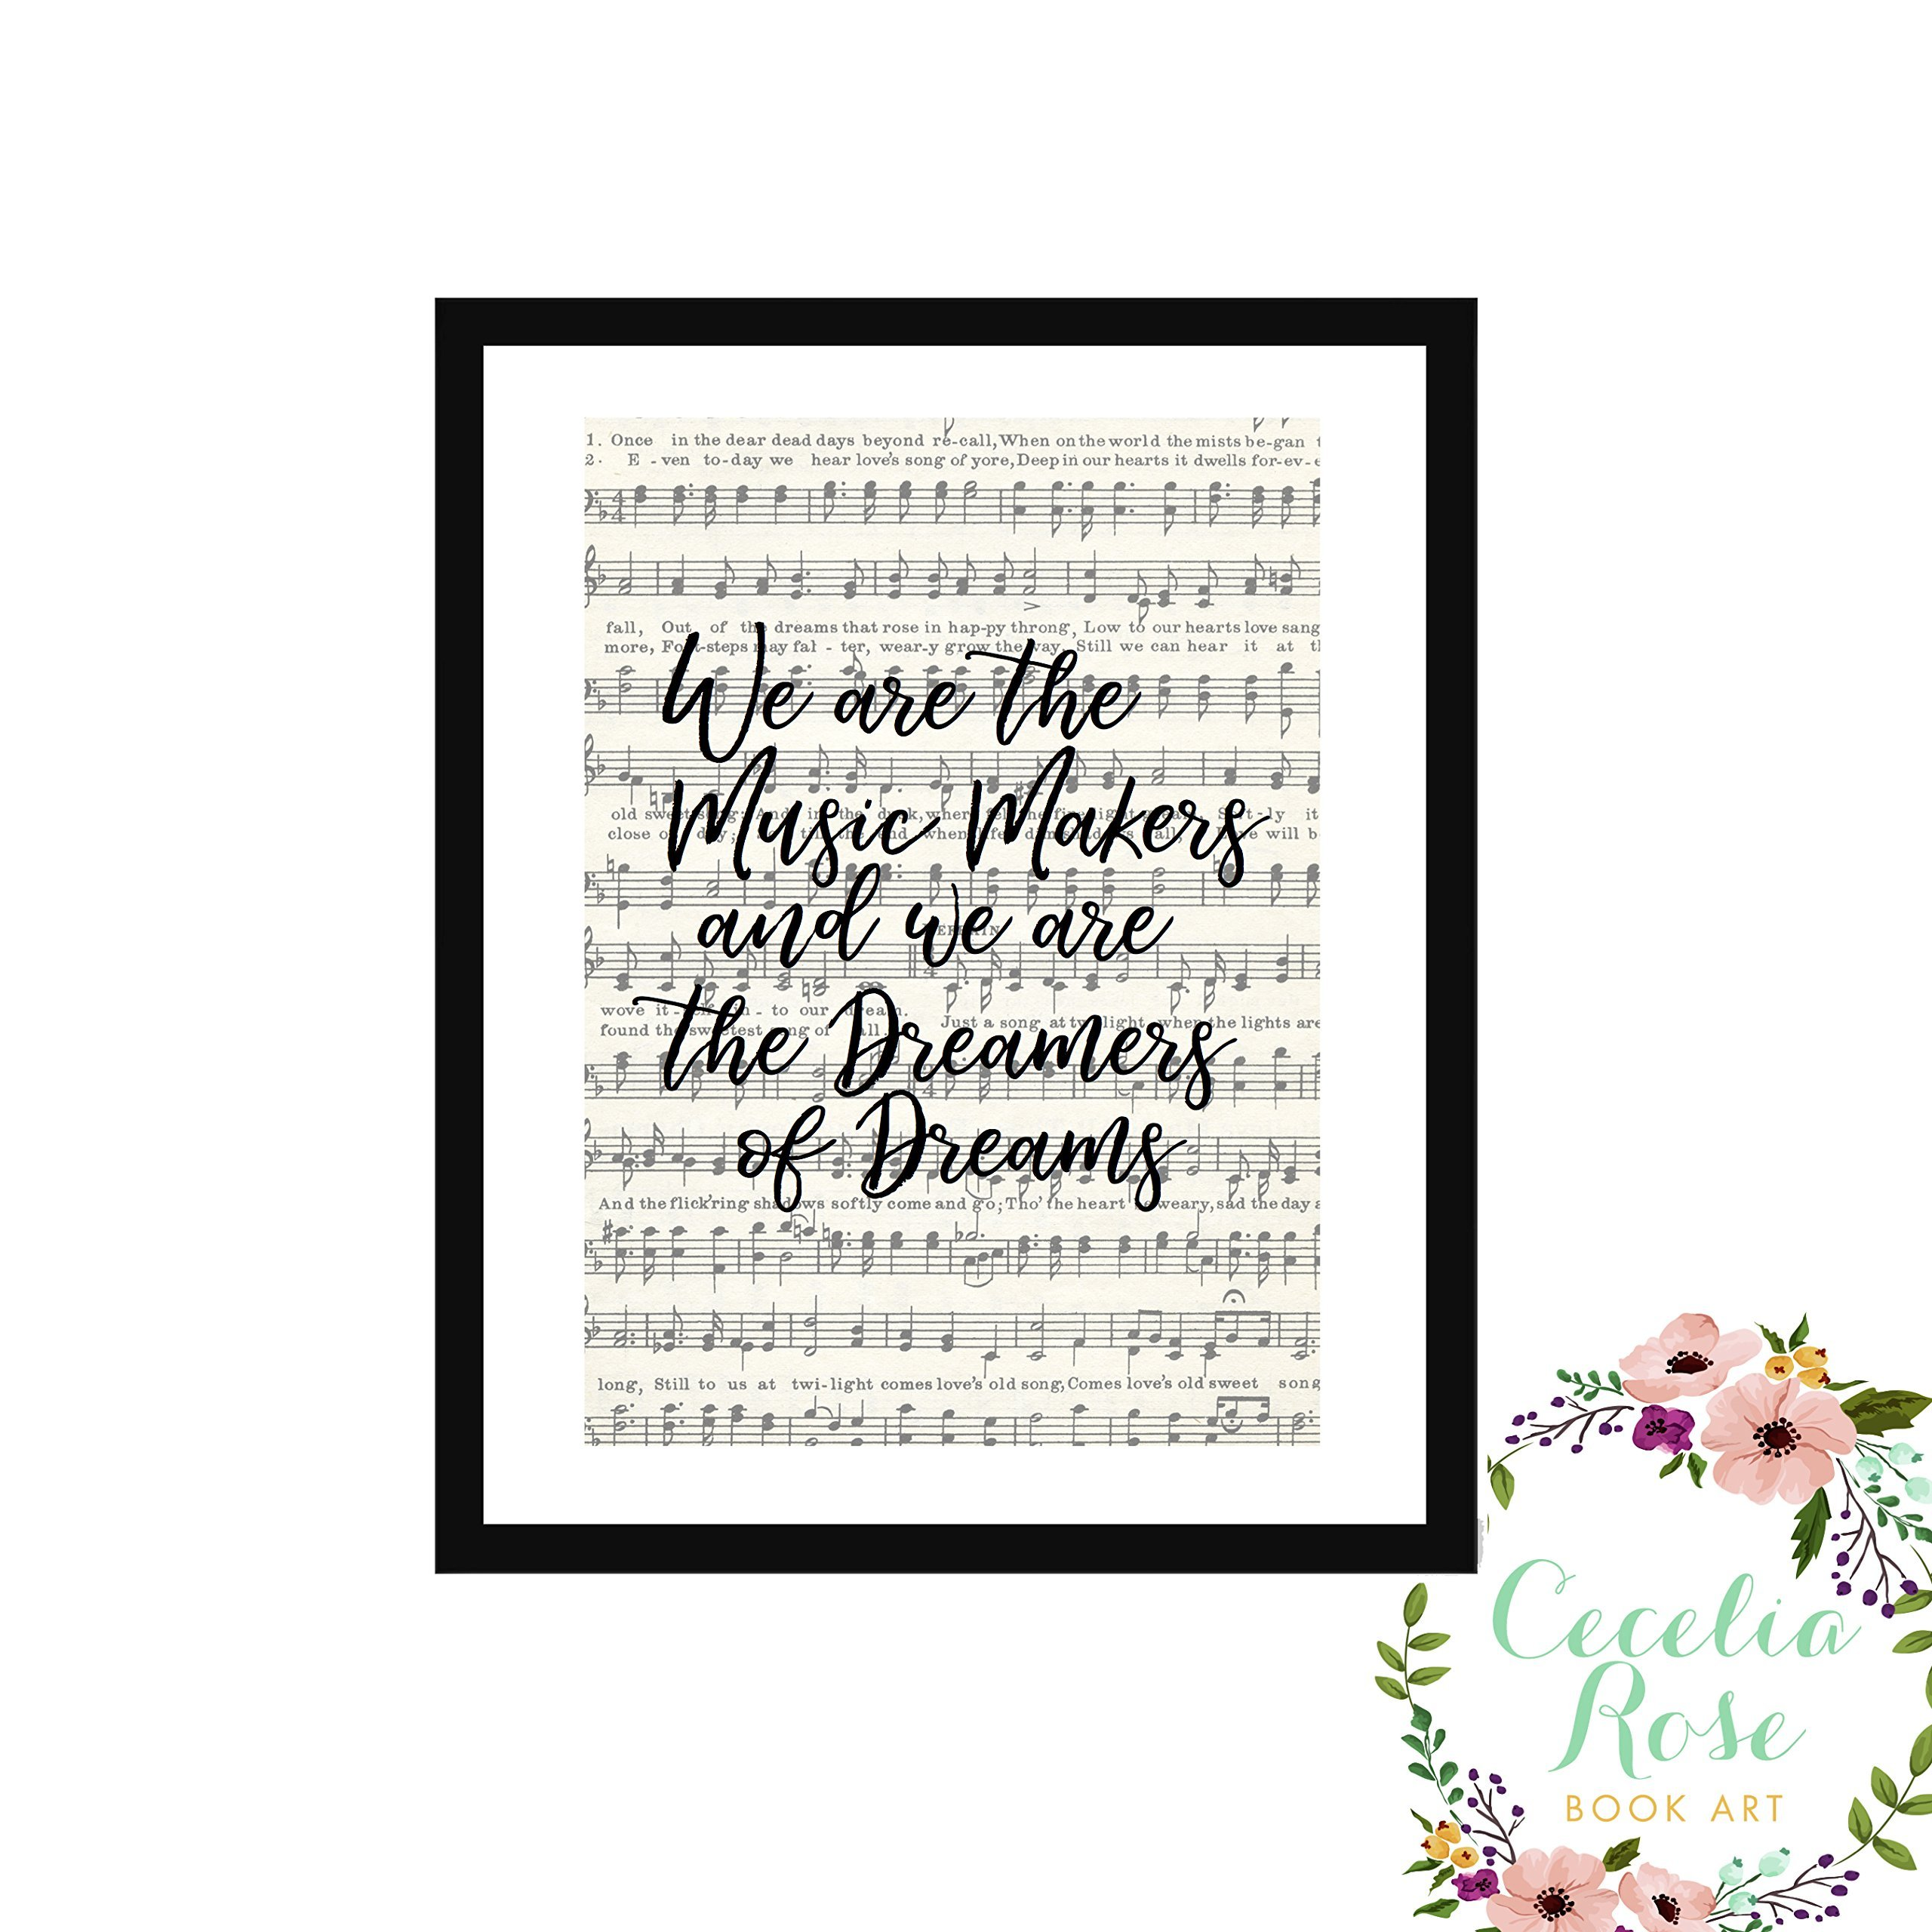 We are the music makers and we are the dreamers of dreams Willy Wonka Charlie and the Chocolate Factory Farmhouse Inspirational Quote Upcycled Vintage Book Page Unframed